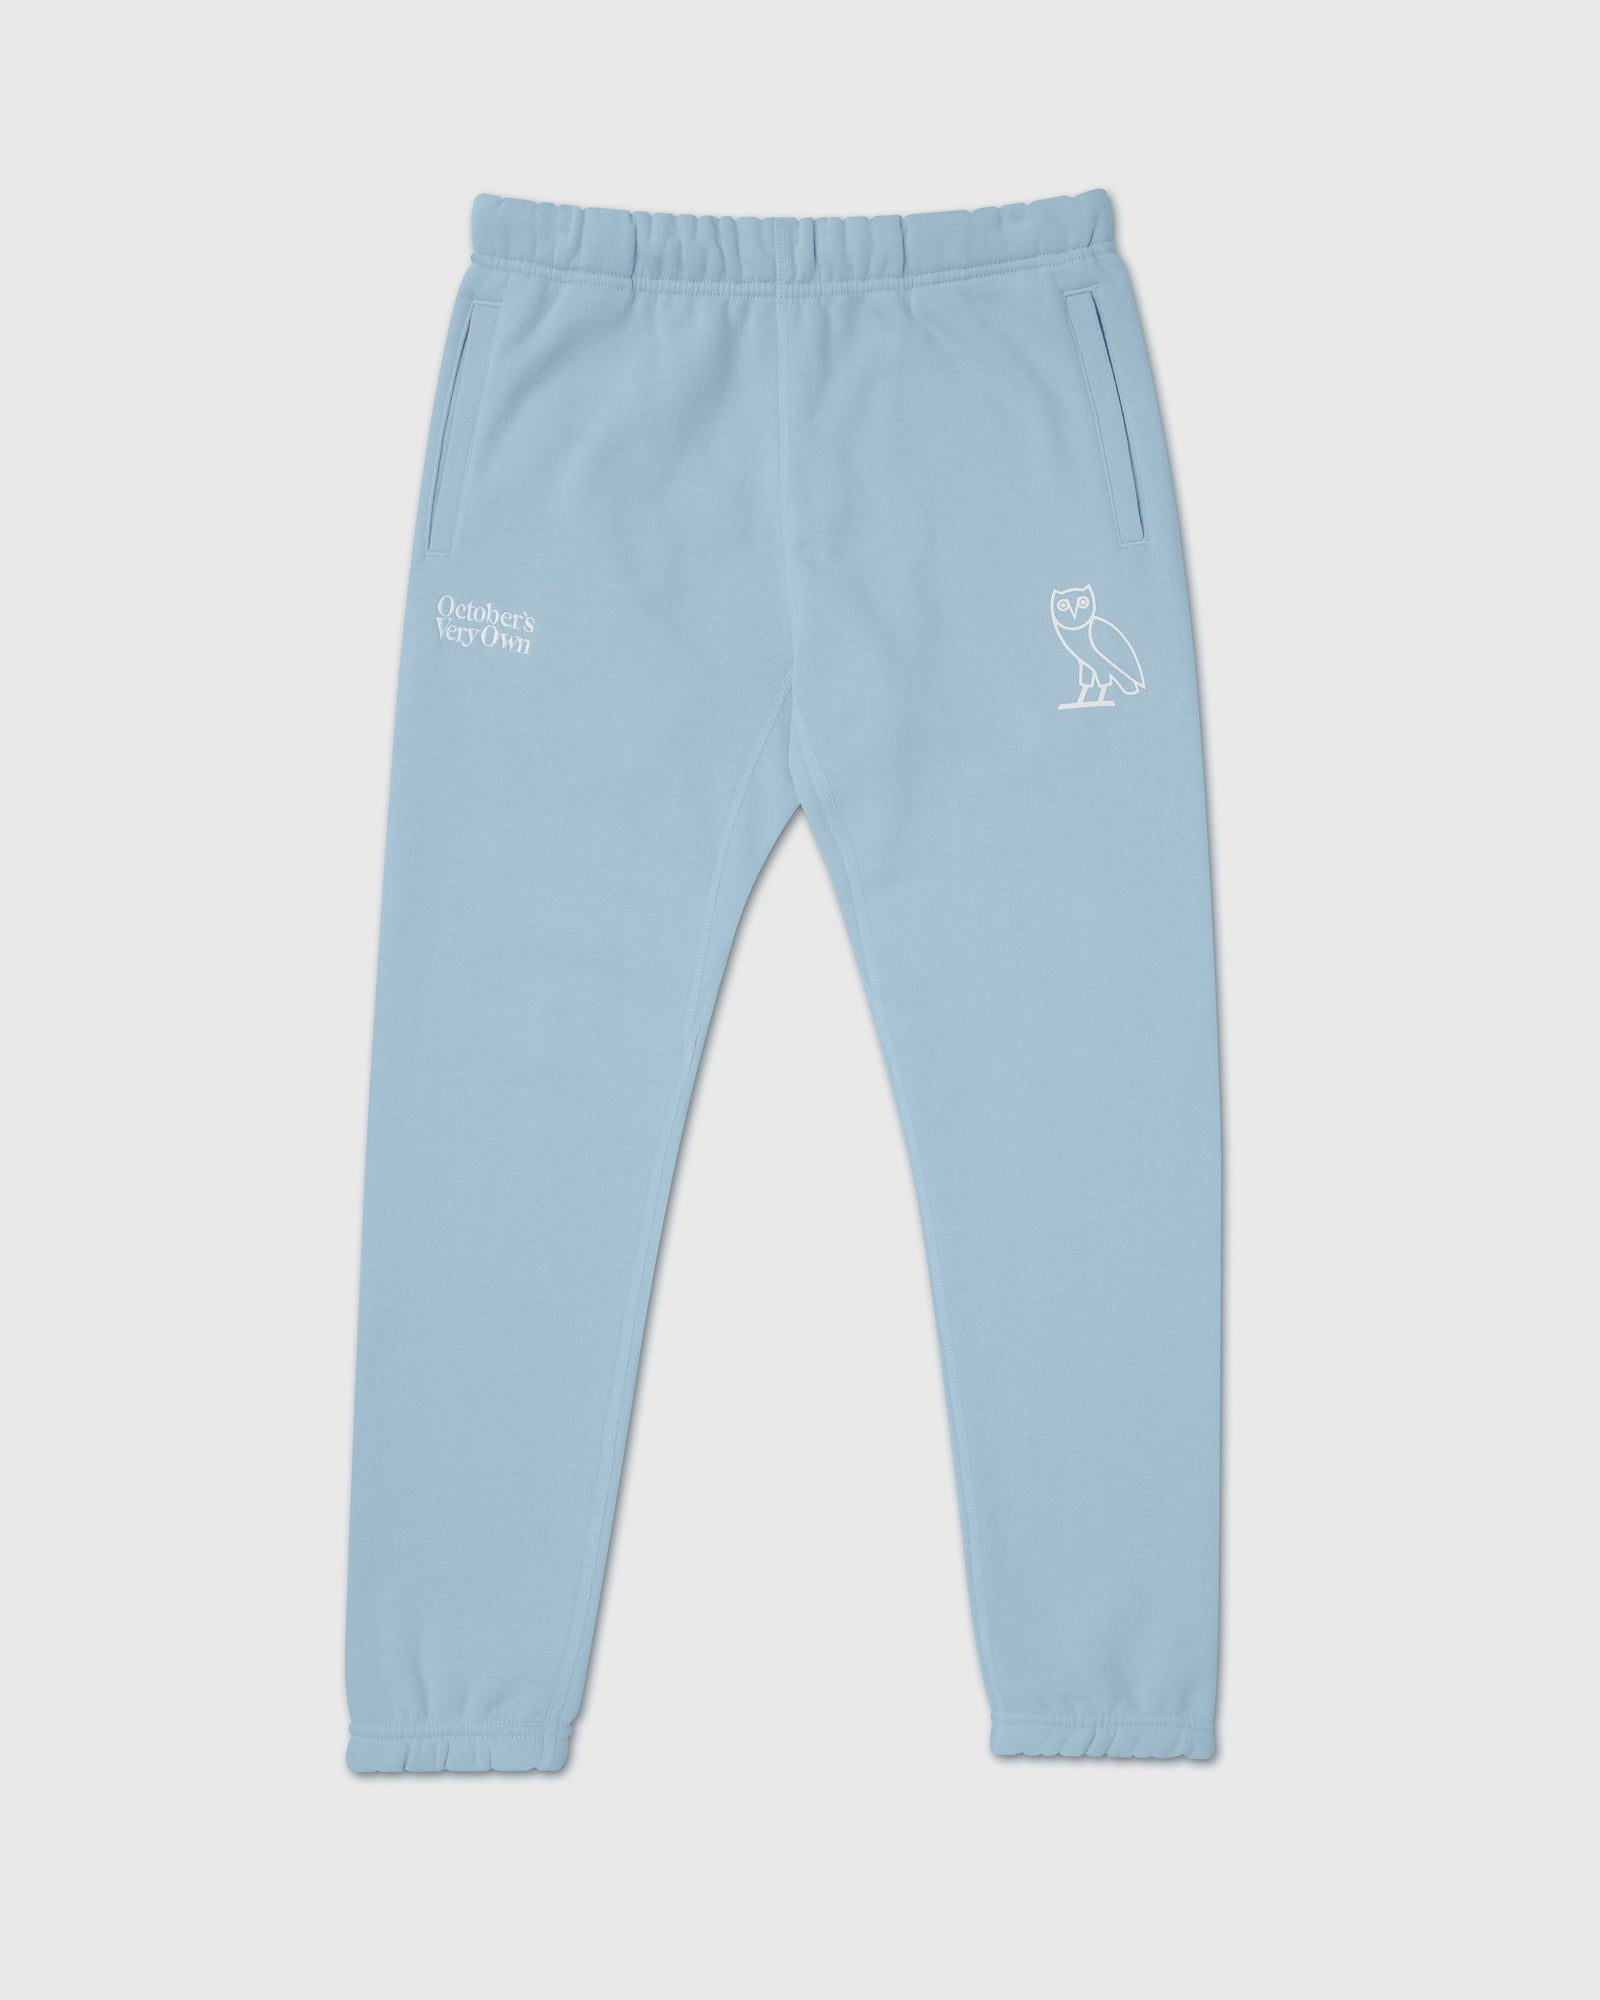 FAMILIA EMBROIDERED SWEATPANT - SKY BLUE IMAGE #1